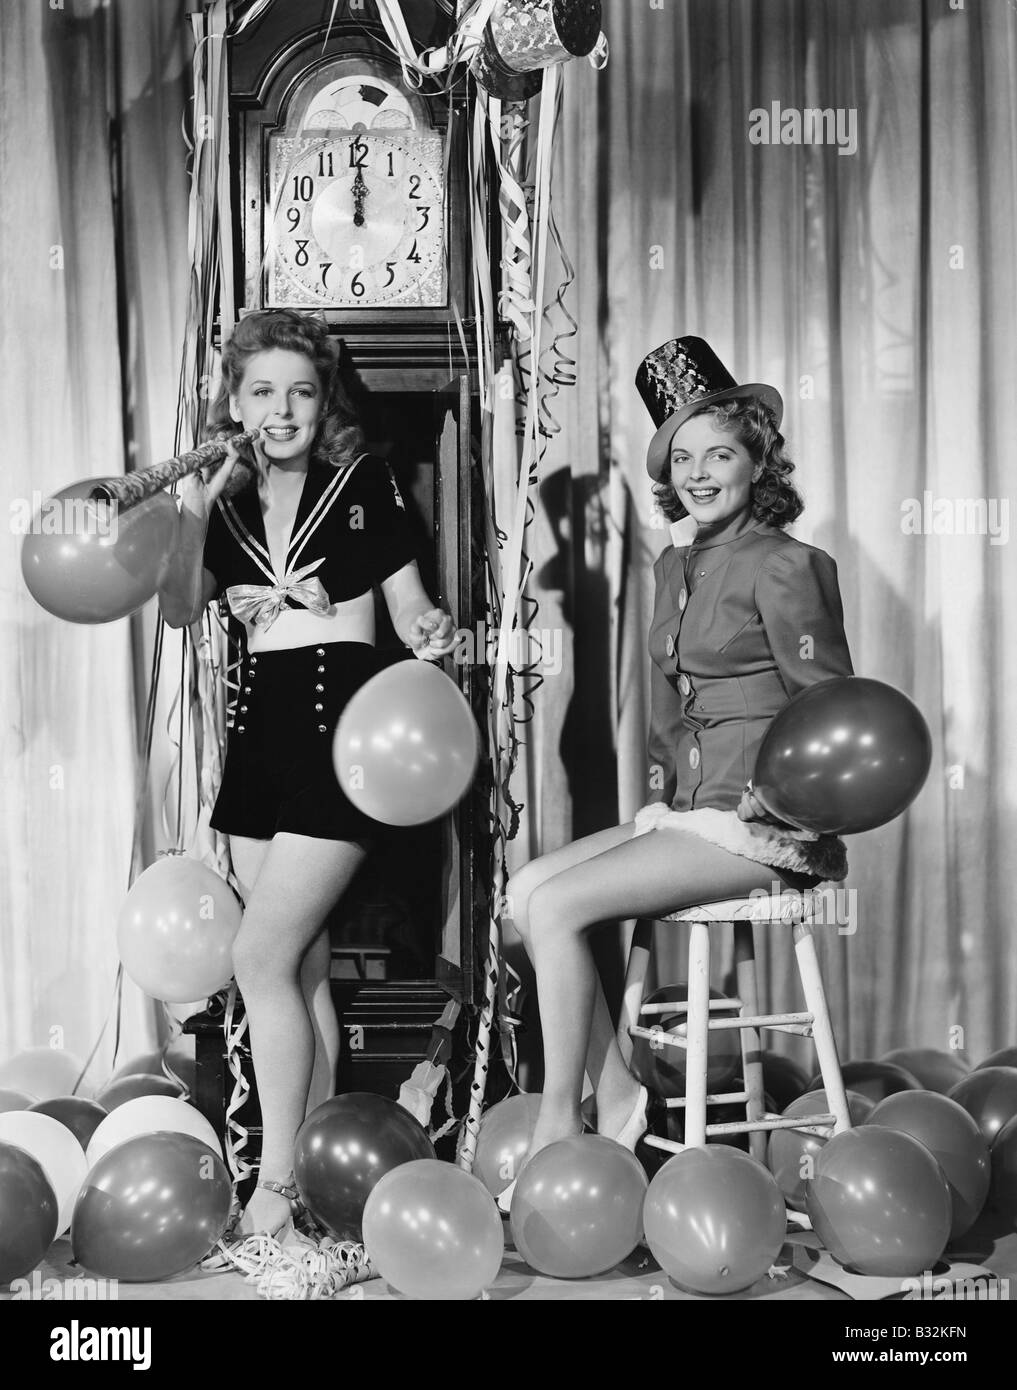 Women with balloons on New Years Eve - Stock Image